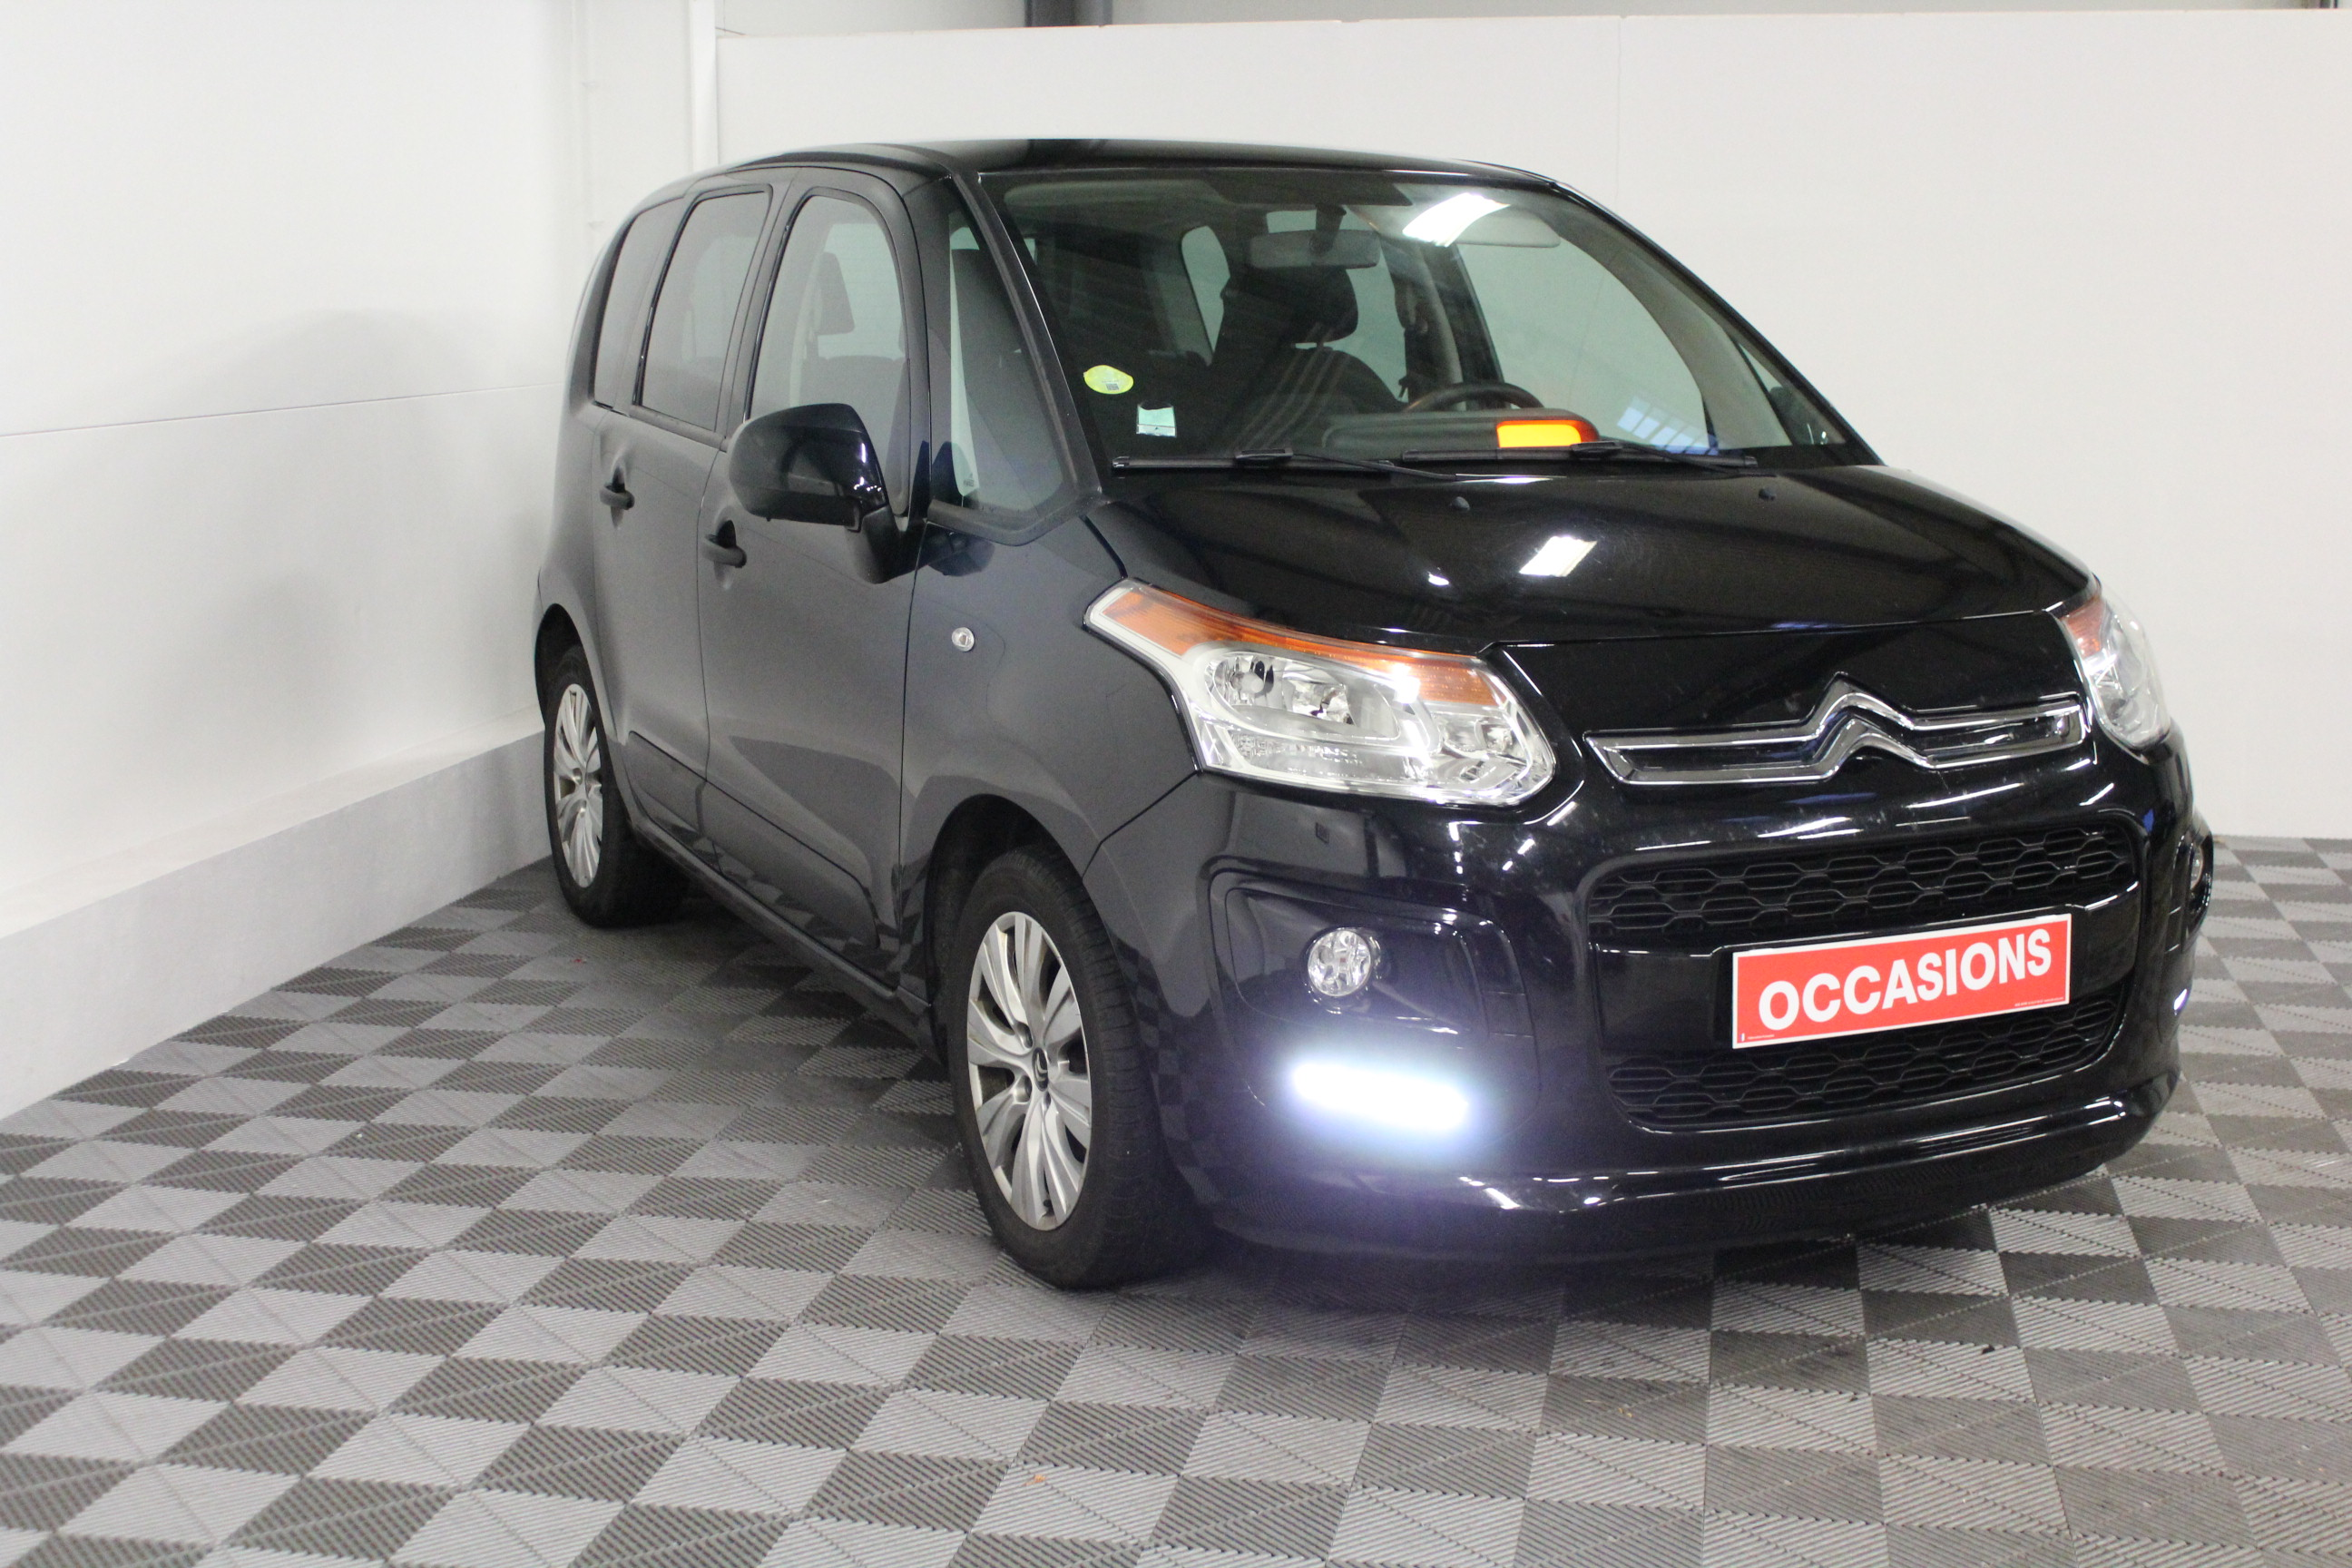 CITROEN C3 PICASSO 2016 à 9900 € - Photo n°3